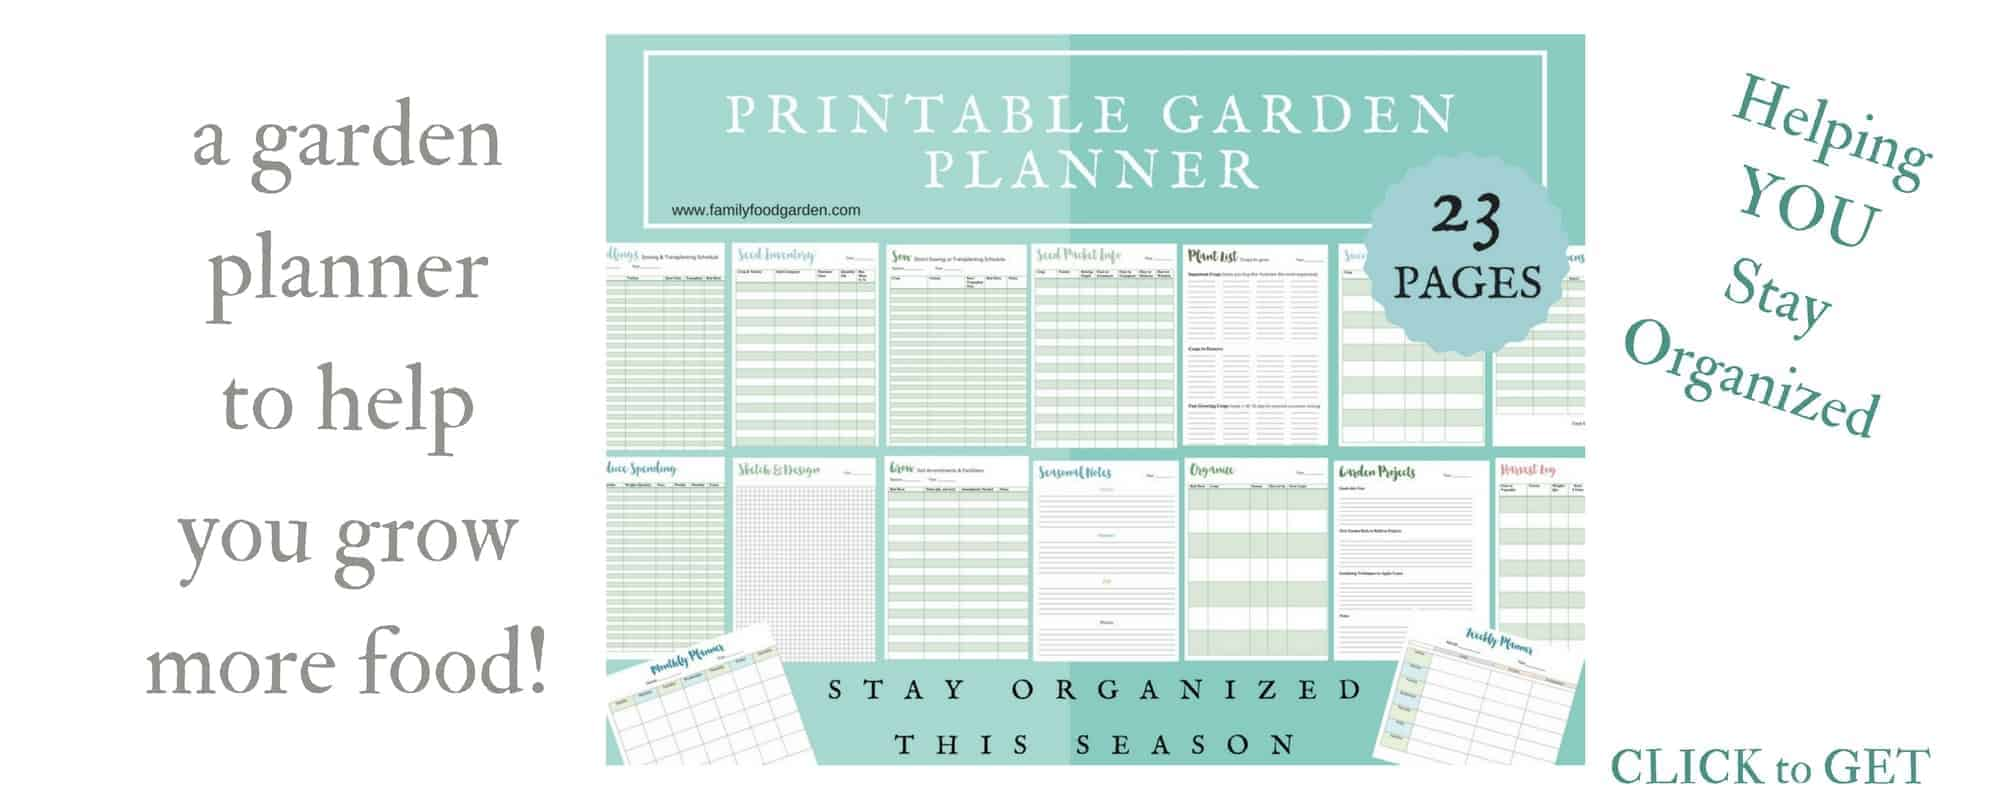 Choosing your seeds free seed inventory printable for Patio planner online free